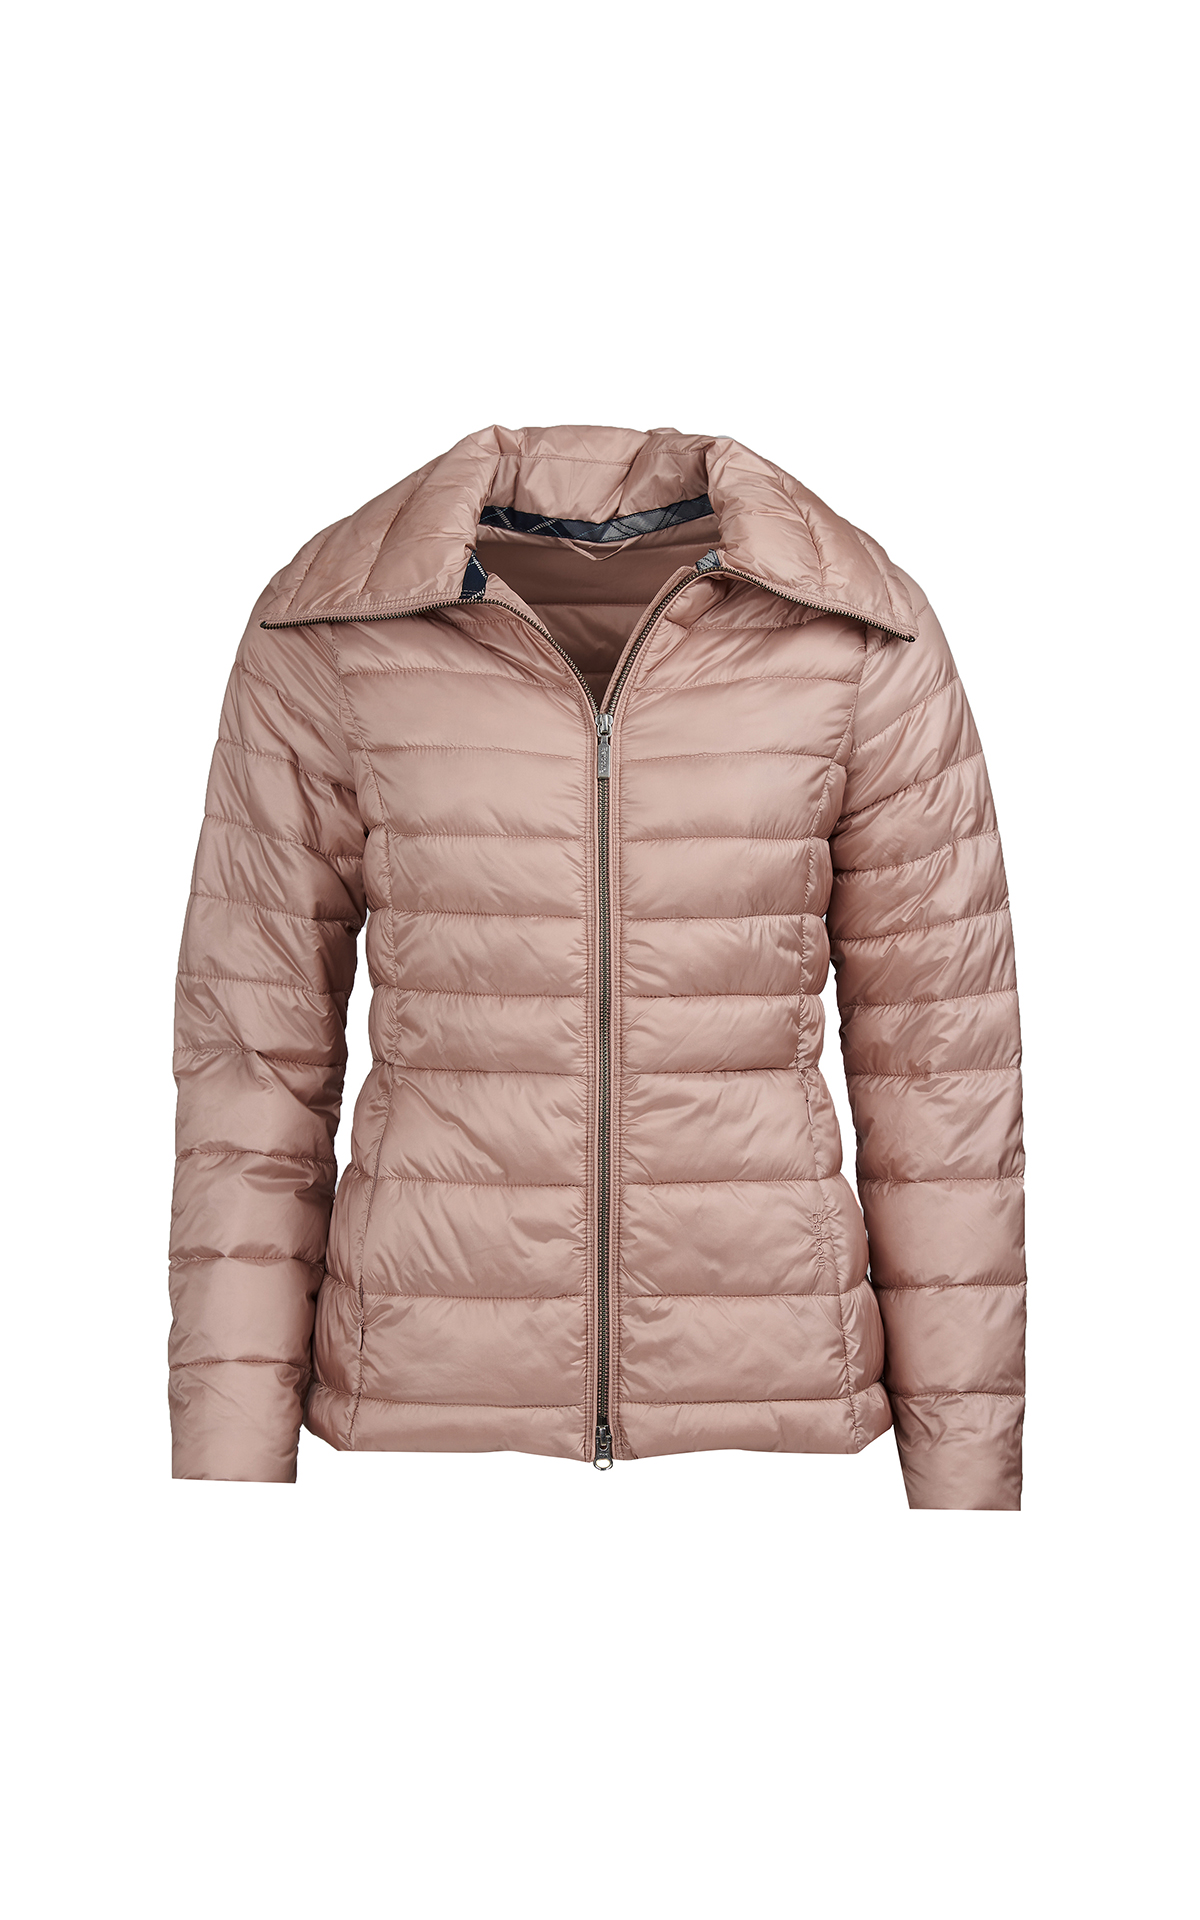 excellent quality huge discount huge selection of Barbour | Jackets & Clothing • Kildare Village